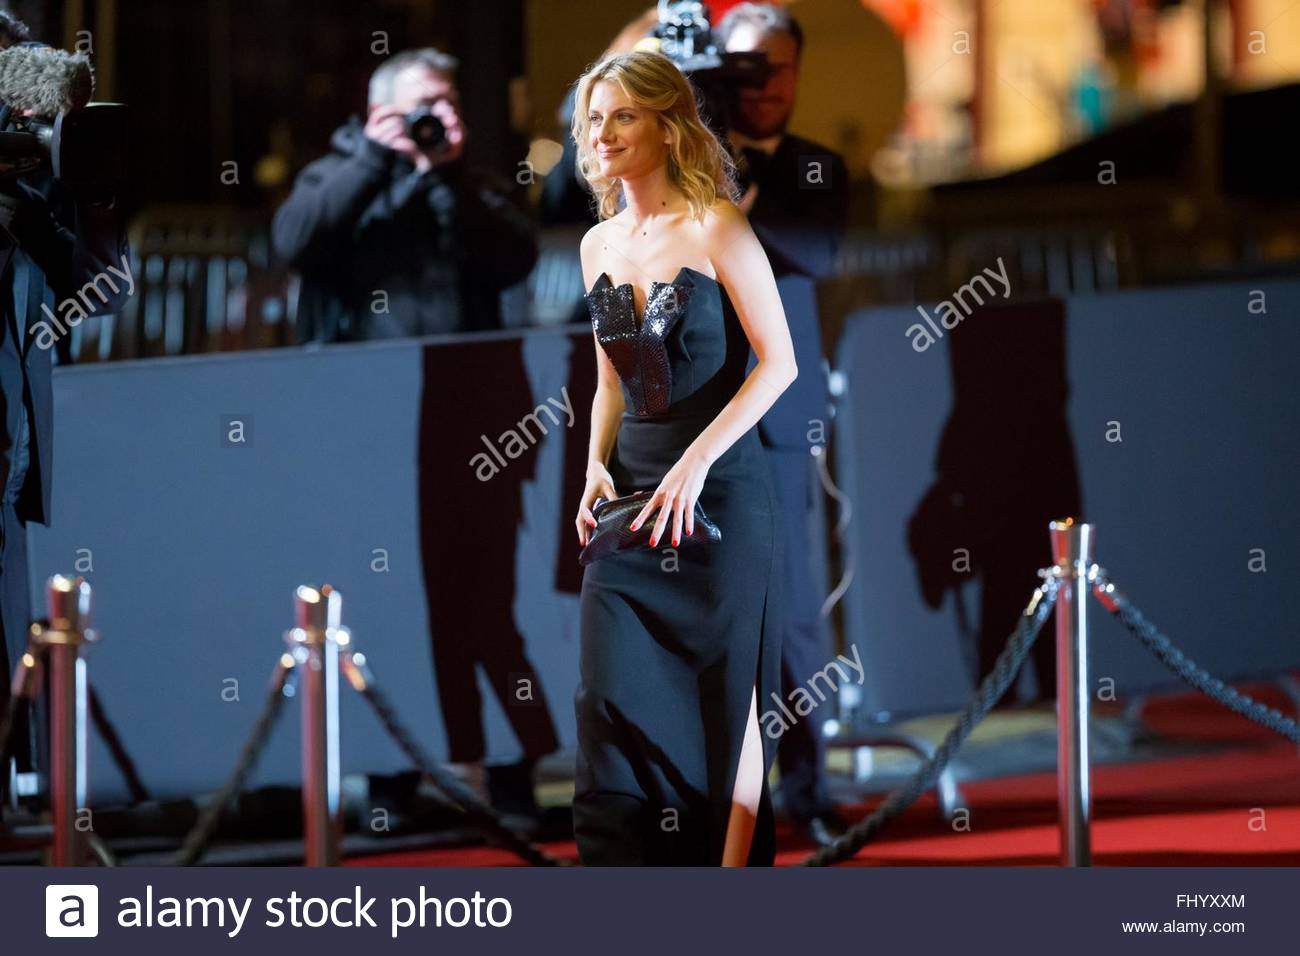 Paris, France. February 26th, 2016. FRANCE, Paris: French actress and director Melanie Laurent walks on the red Stock Photo